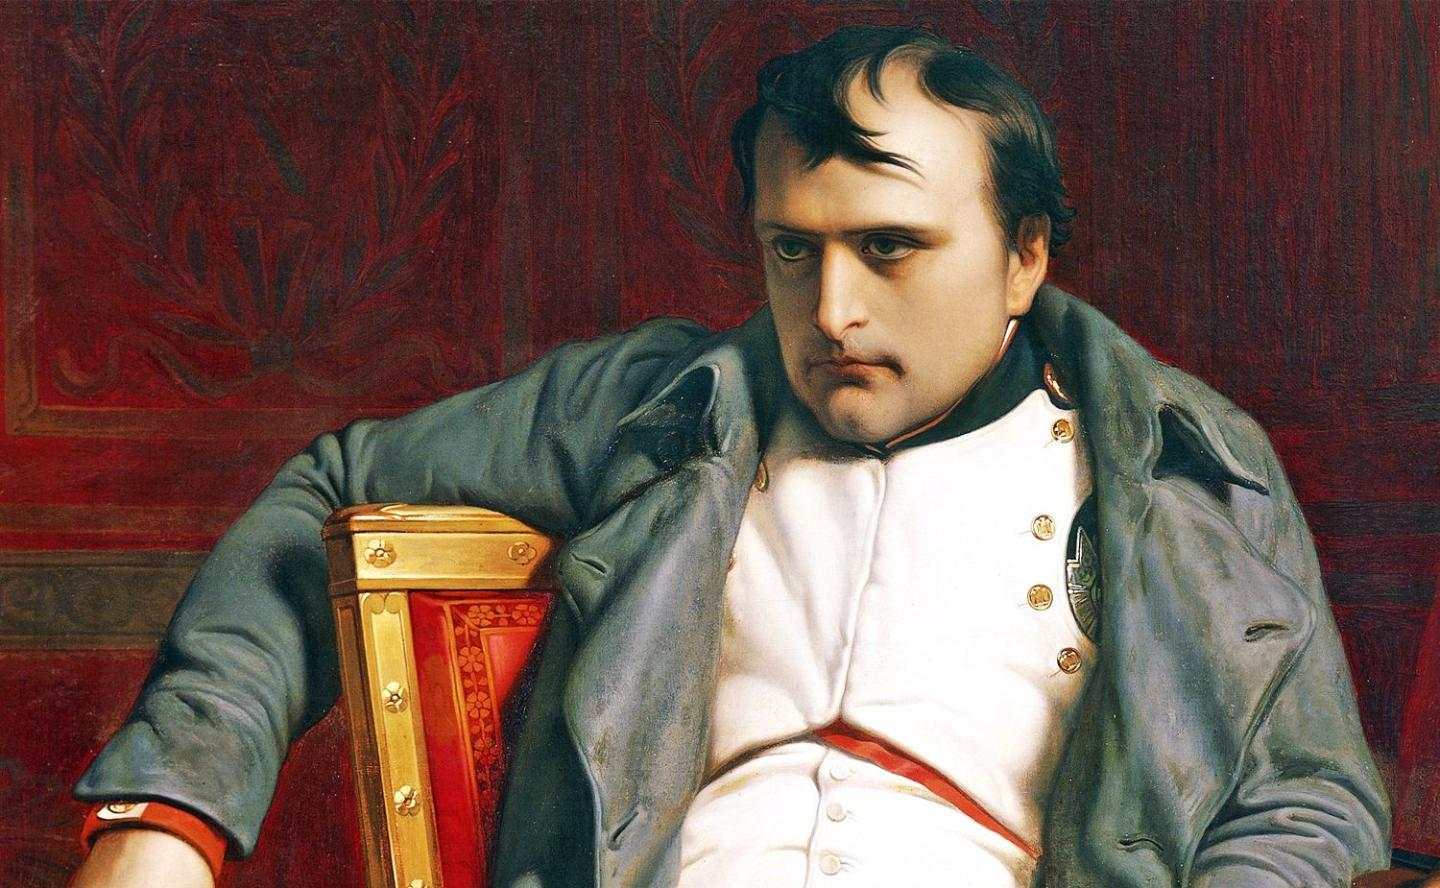 a biography of a french military genius napoleon bonaparte Napoléon bonaparte was and still is one of france's most astounding leaders   napoleon was also a military genius, one of the greatest generals in history.